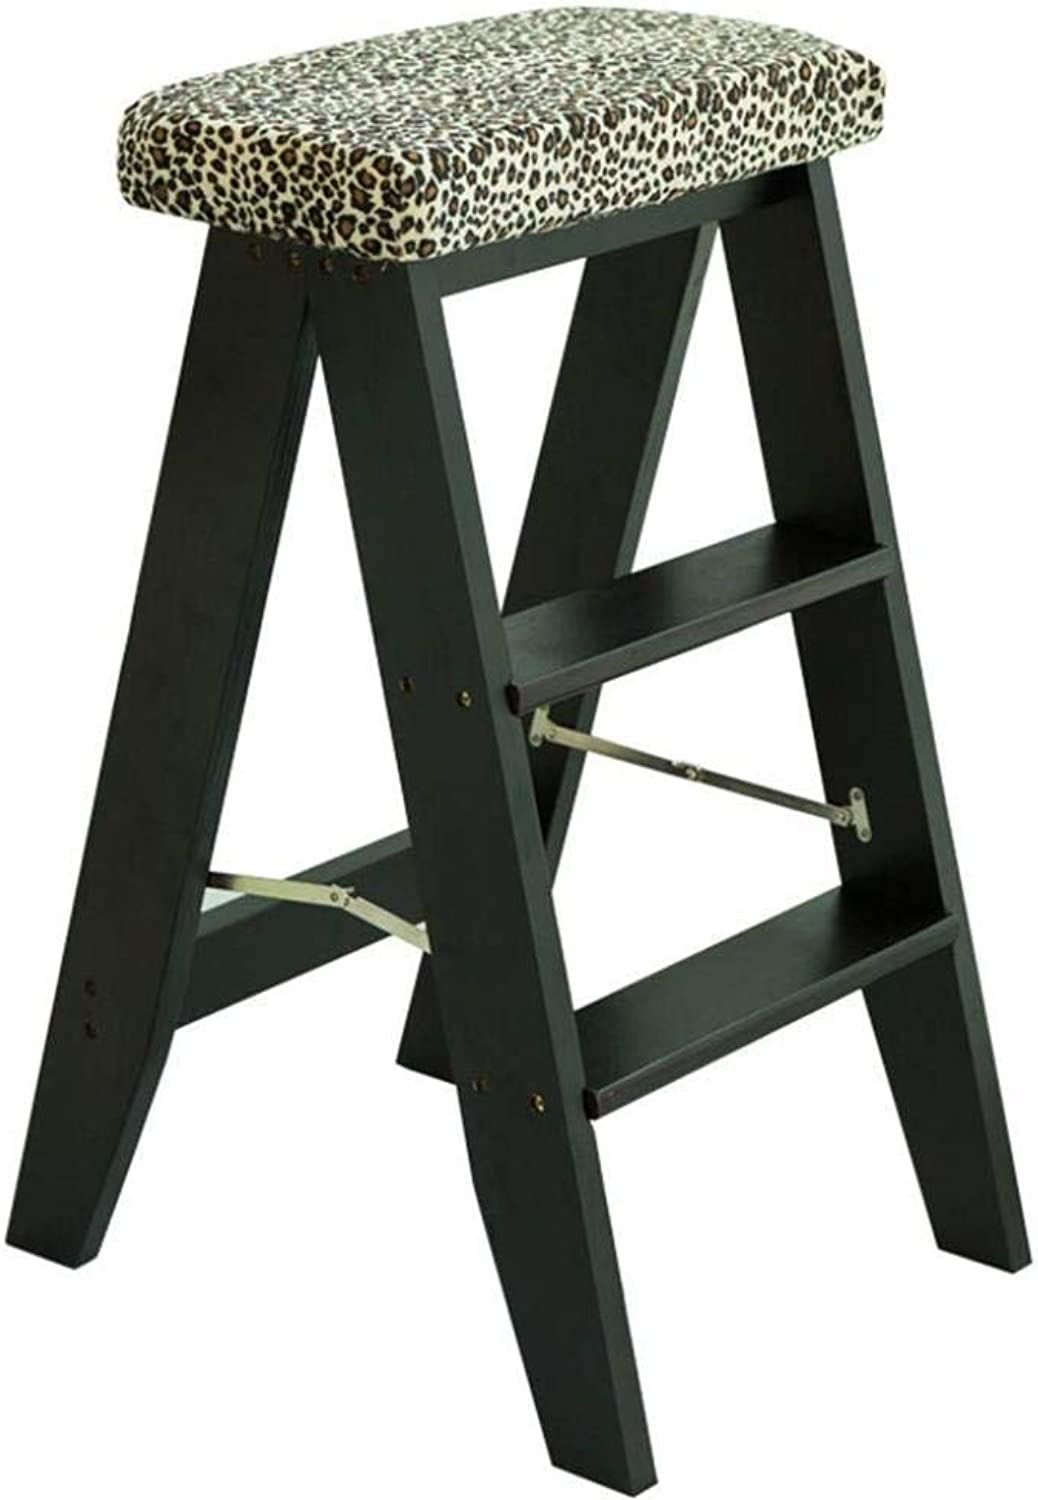 Imported Logs Multi-Function Household Folding Ladder Indoor Folding Stool Kitchen Stool Portable Stool Solid Wood Step Stool 34x32x60cm ZXMDMZ (color   Black)